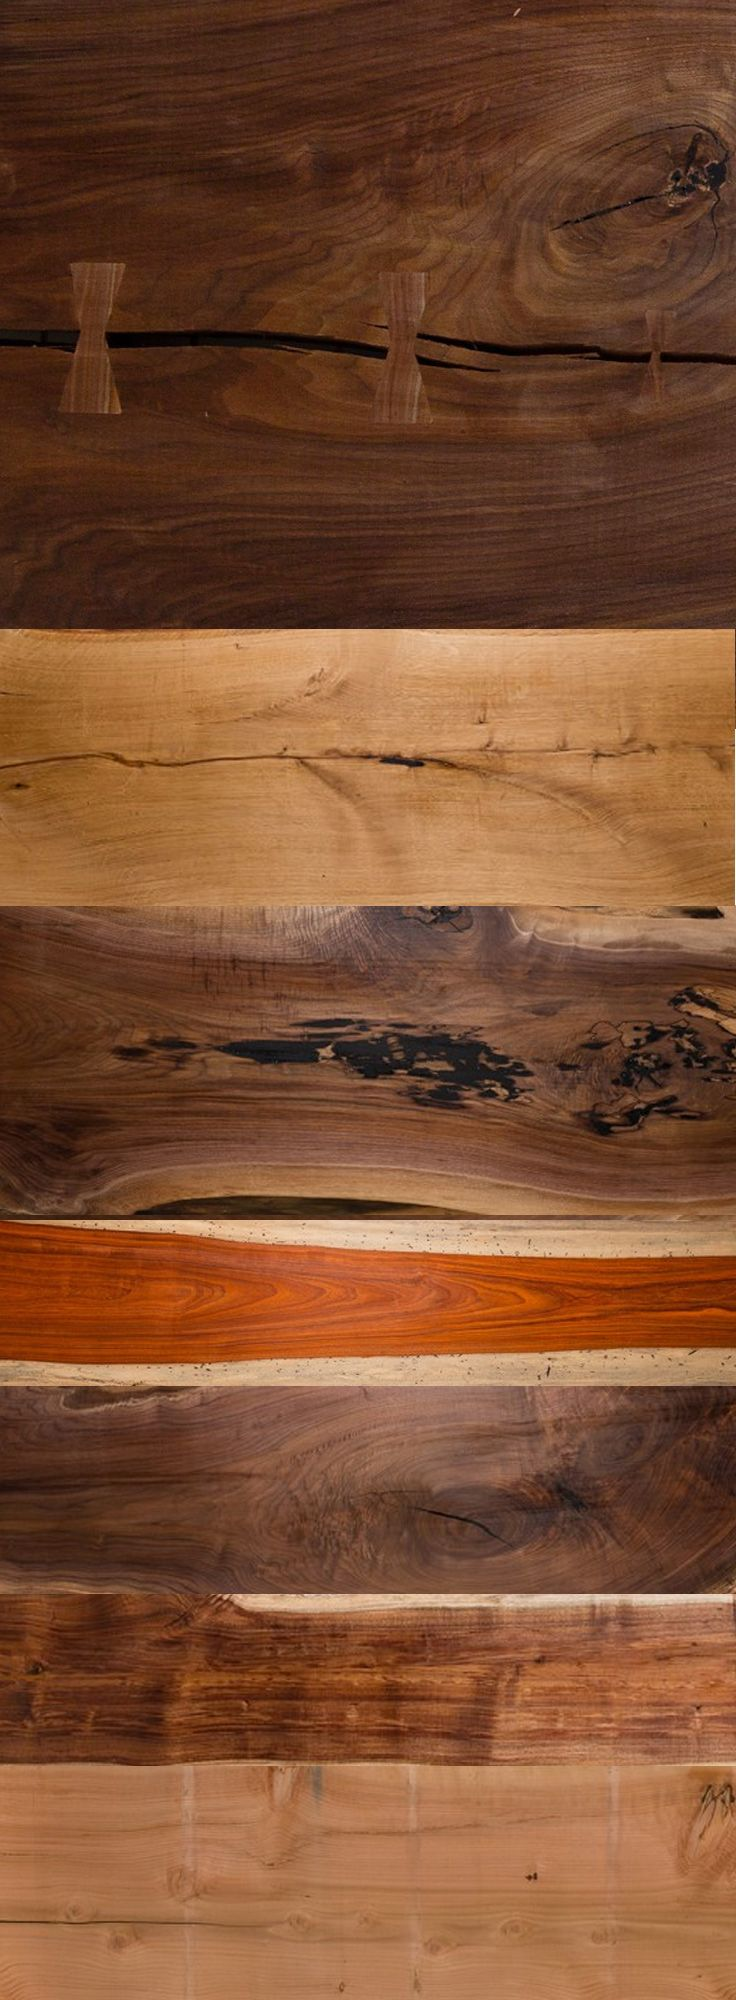 Wood Slabs Can Be Turned Into A Variety Of Stunning Pieces From Furniture To Vanities Light